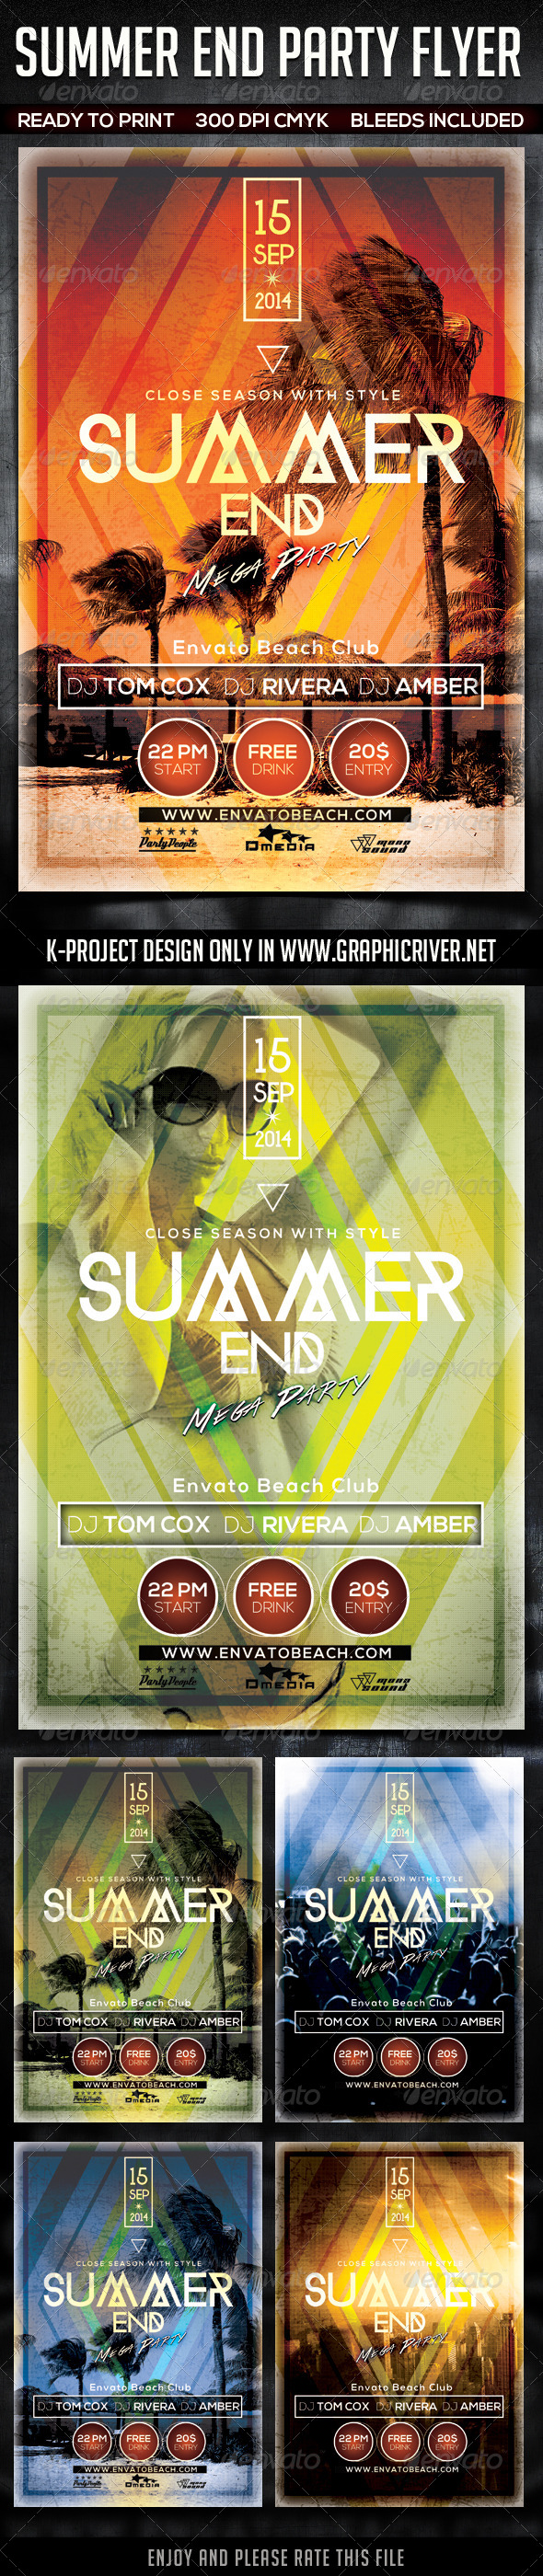 GraphicRiver Summer End Party Flyer 8724708